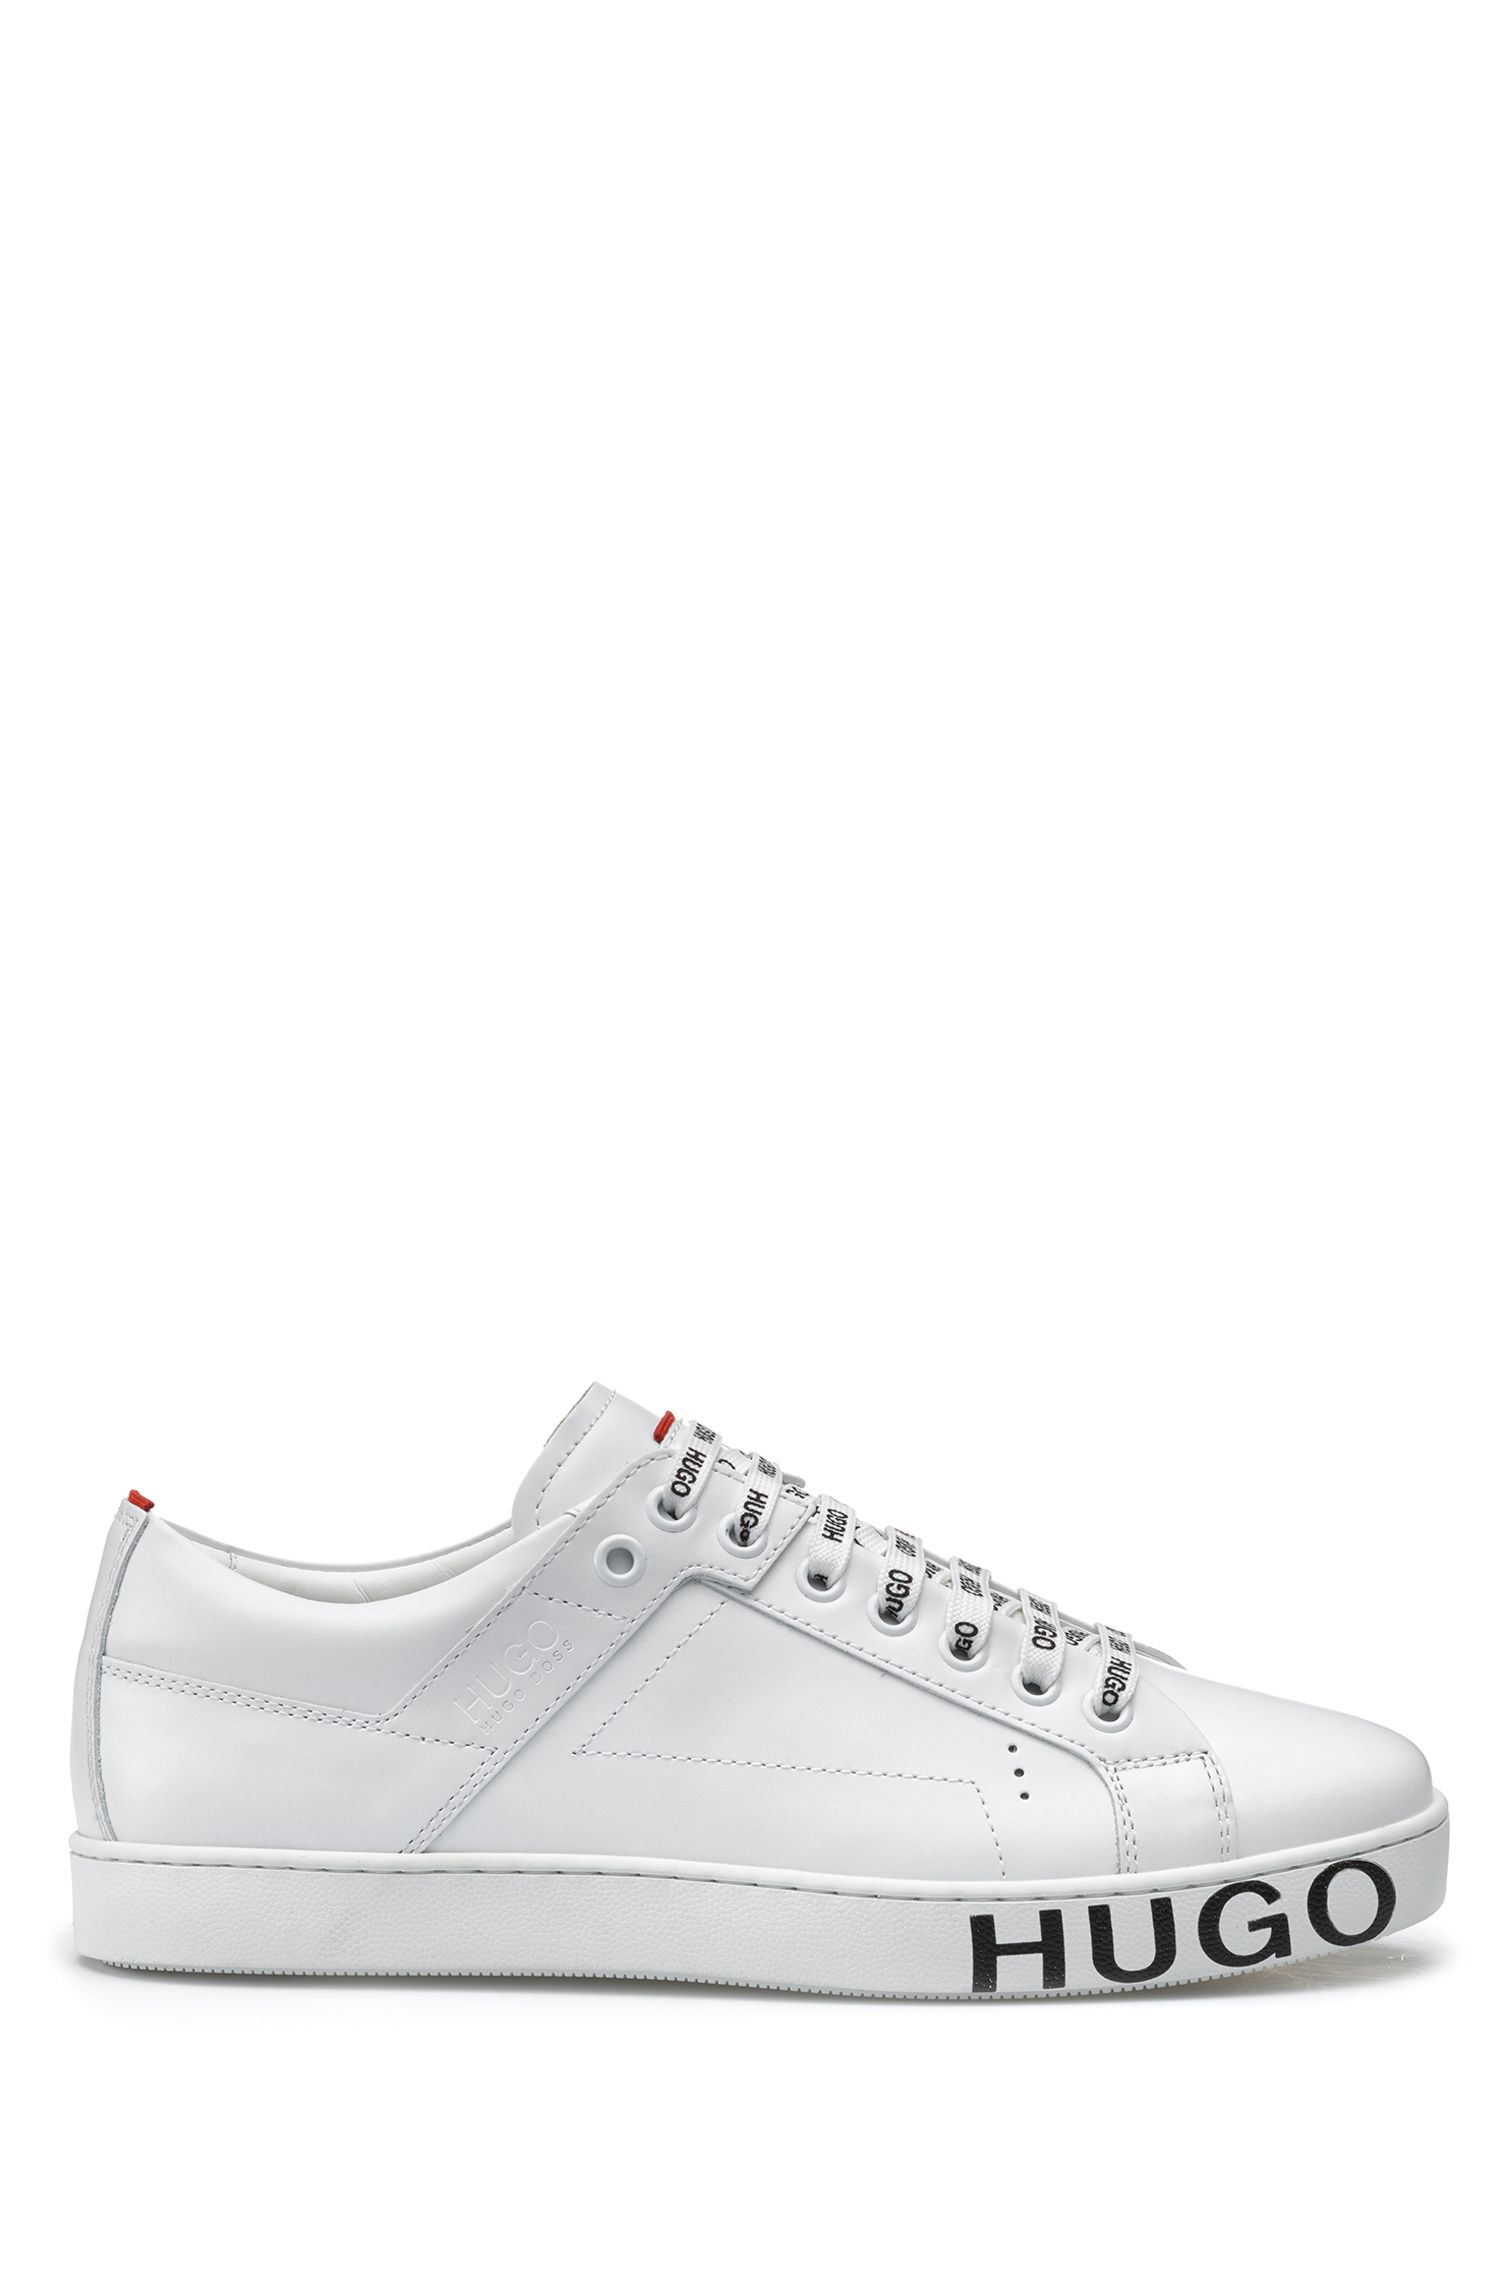 Low-top sneakers in Italian leather with statement logo, White